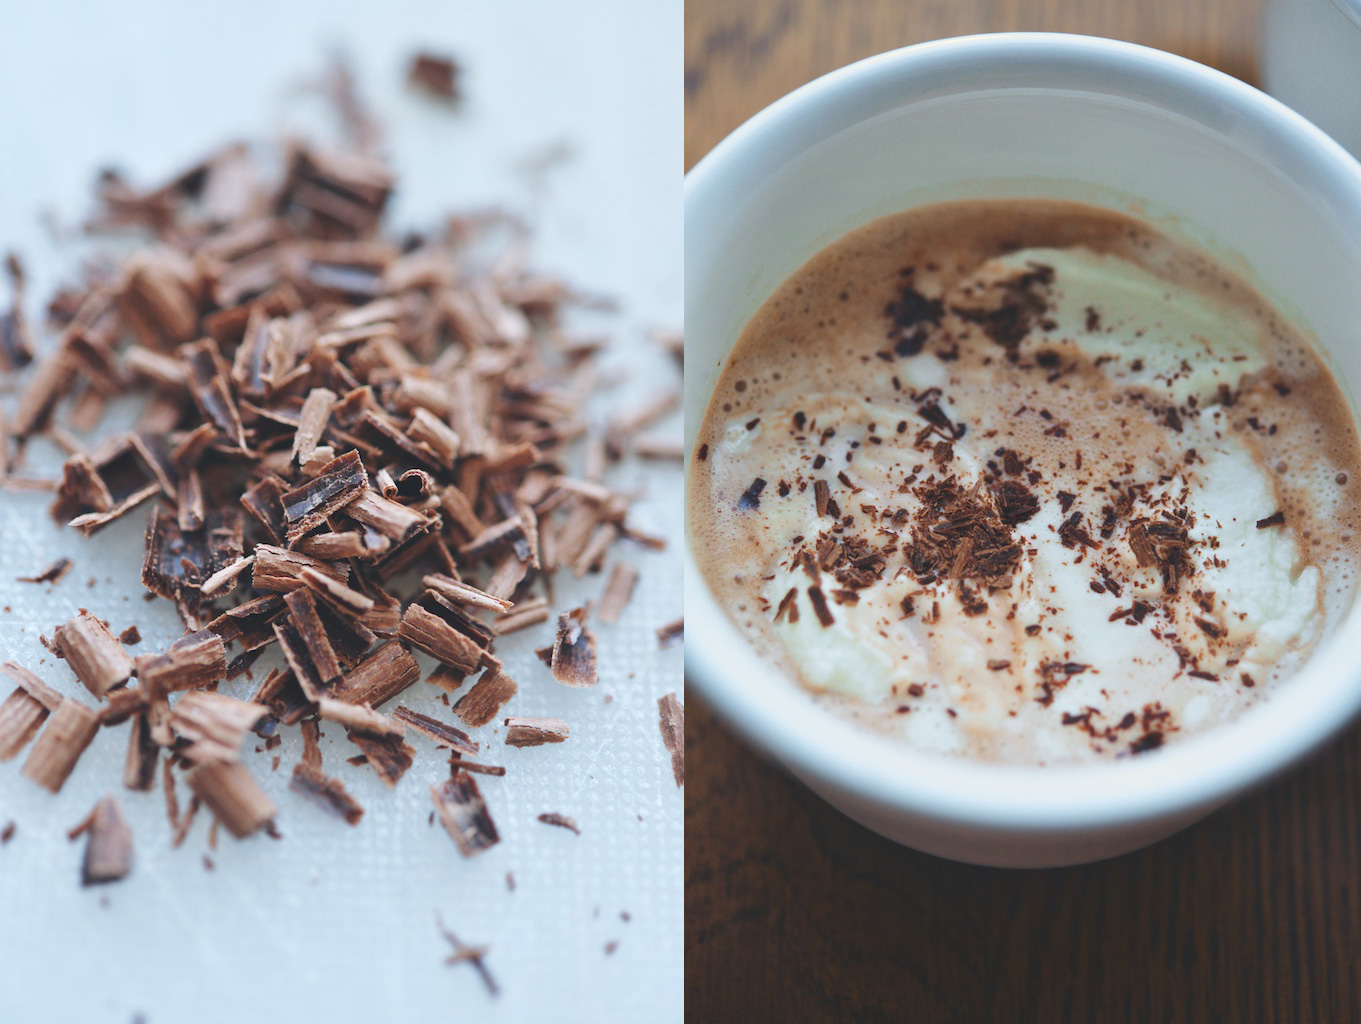 shaved chocolate and hot chocolate